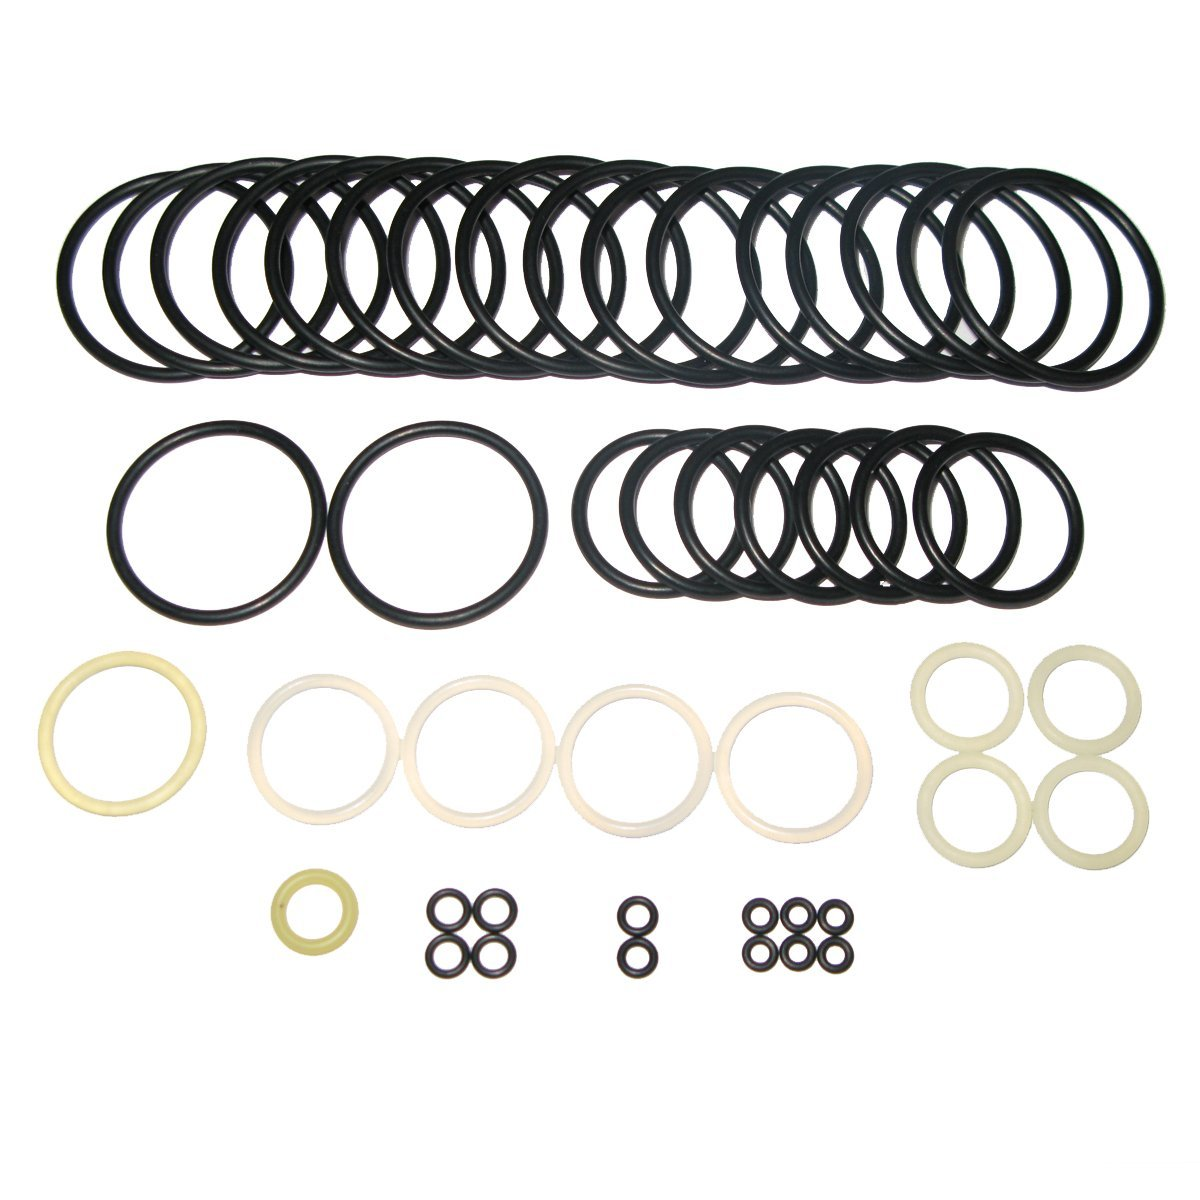 RPM Tech Level SmartParts Spares Kit for Shocker SFT and NXT - Most Commonly Needed OEM Orings